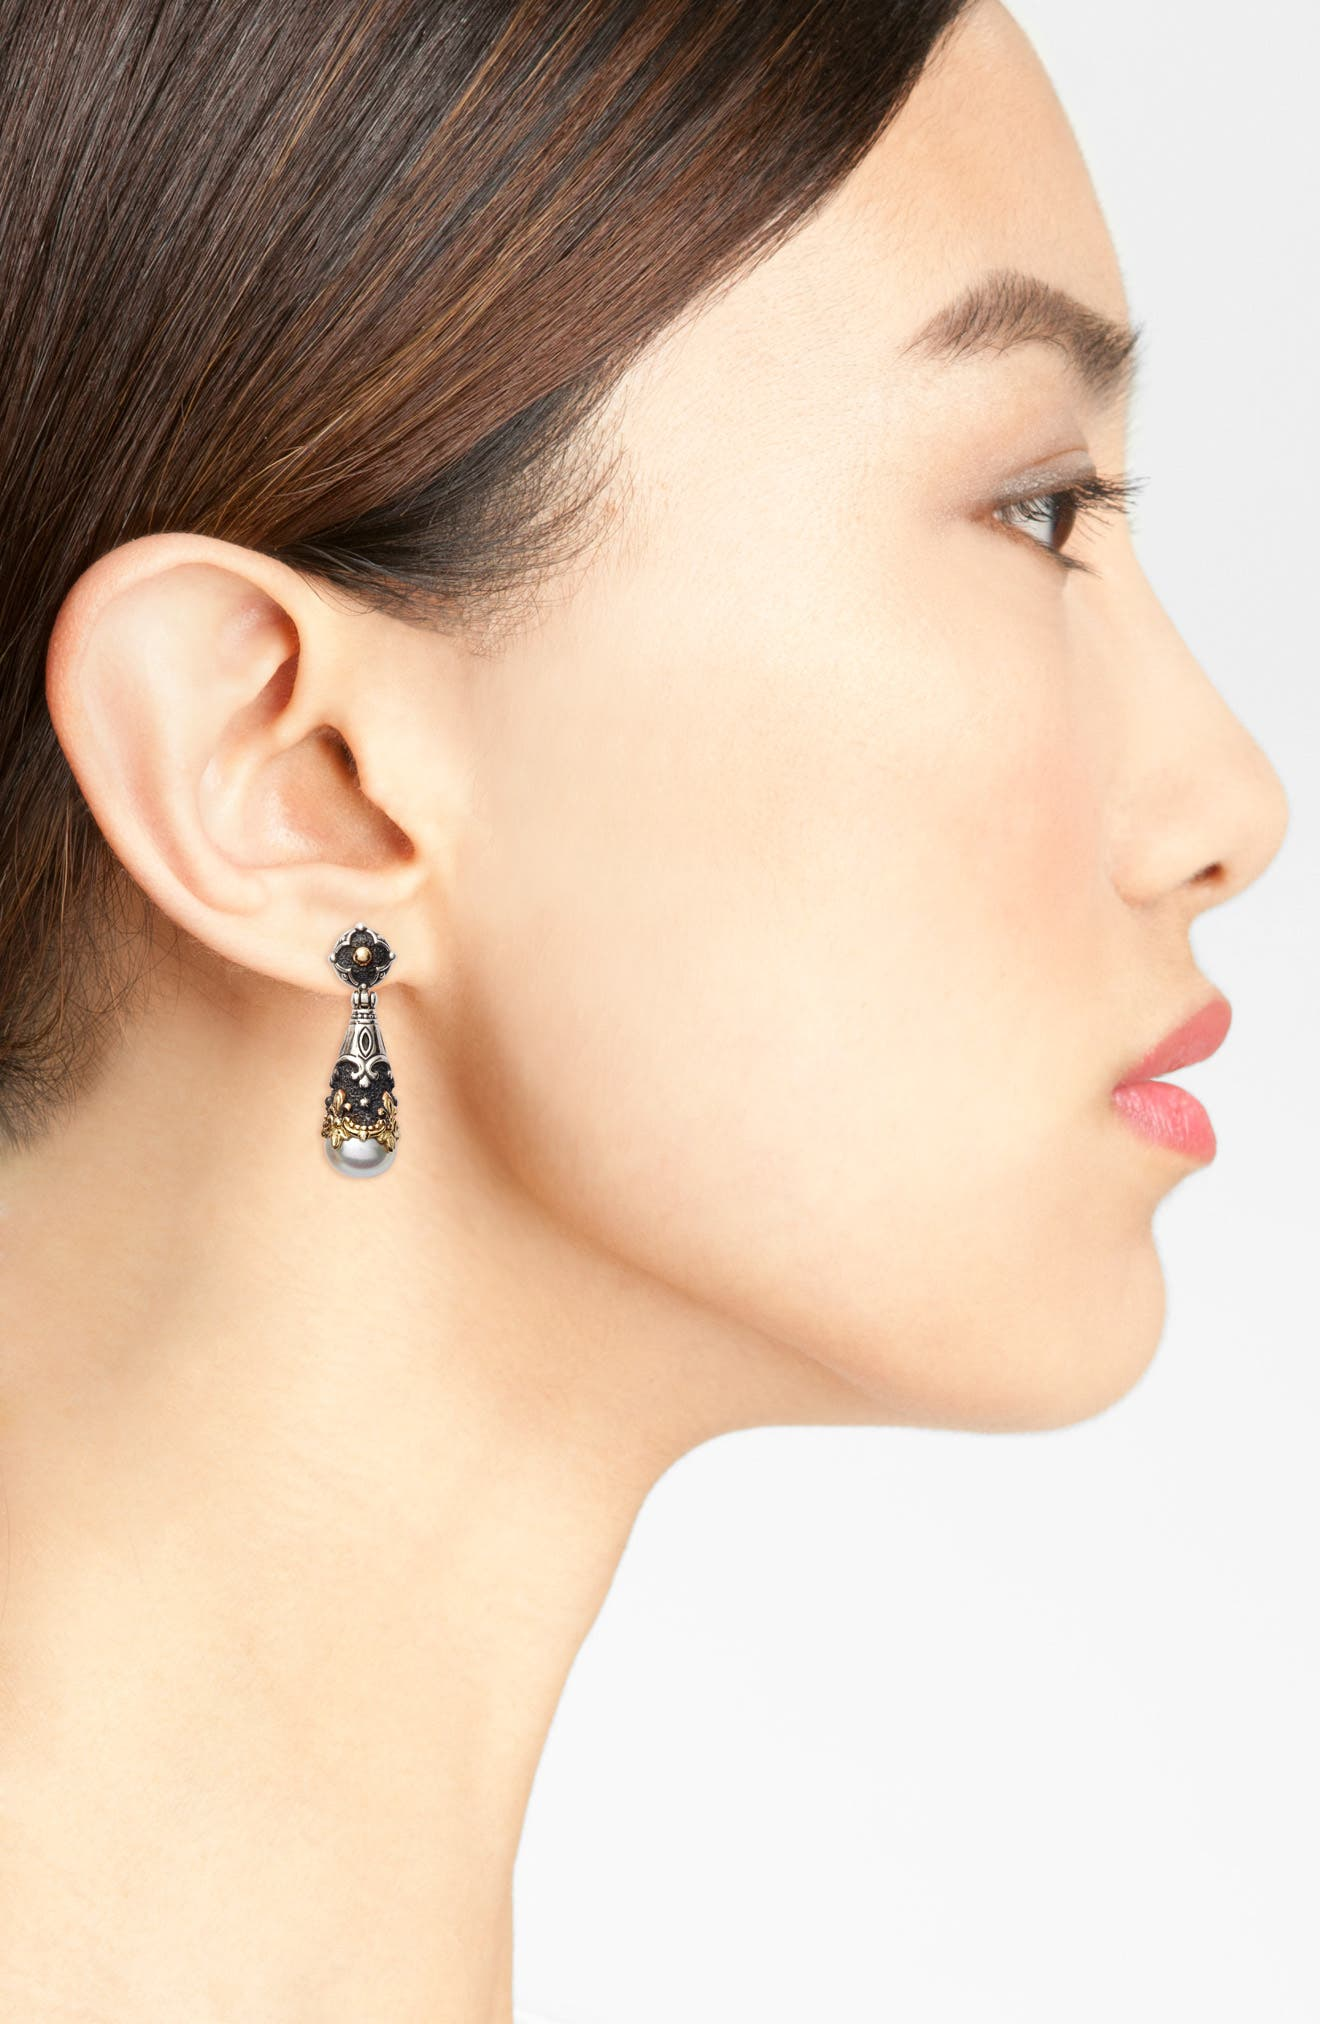 Nemesis Teardrop Earrings,                             Alternate thumbnail 2, color,                             040